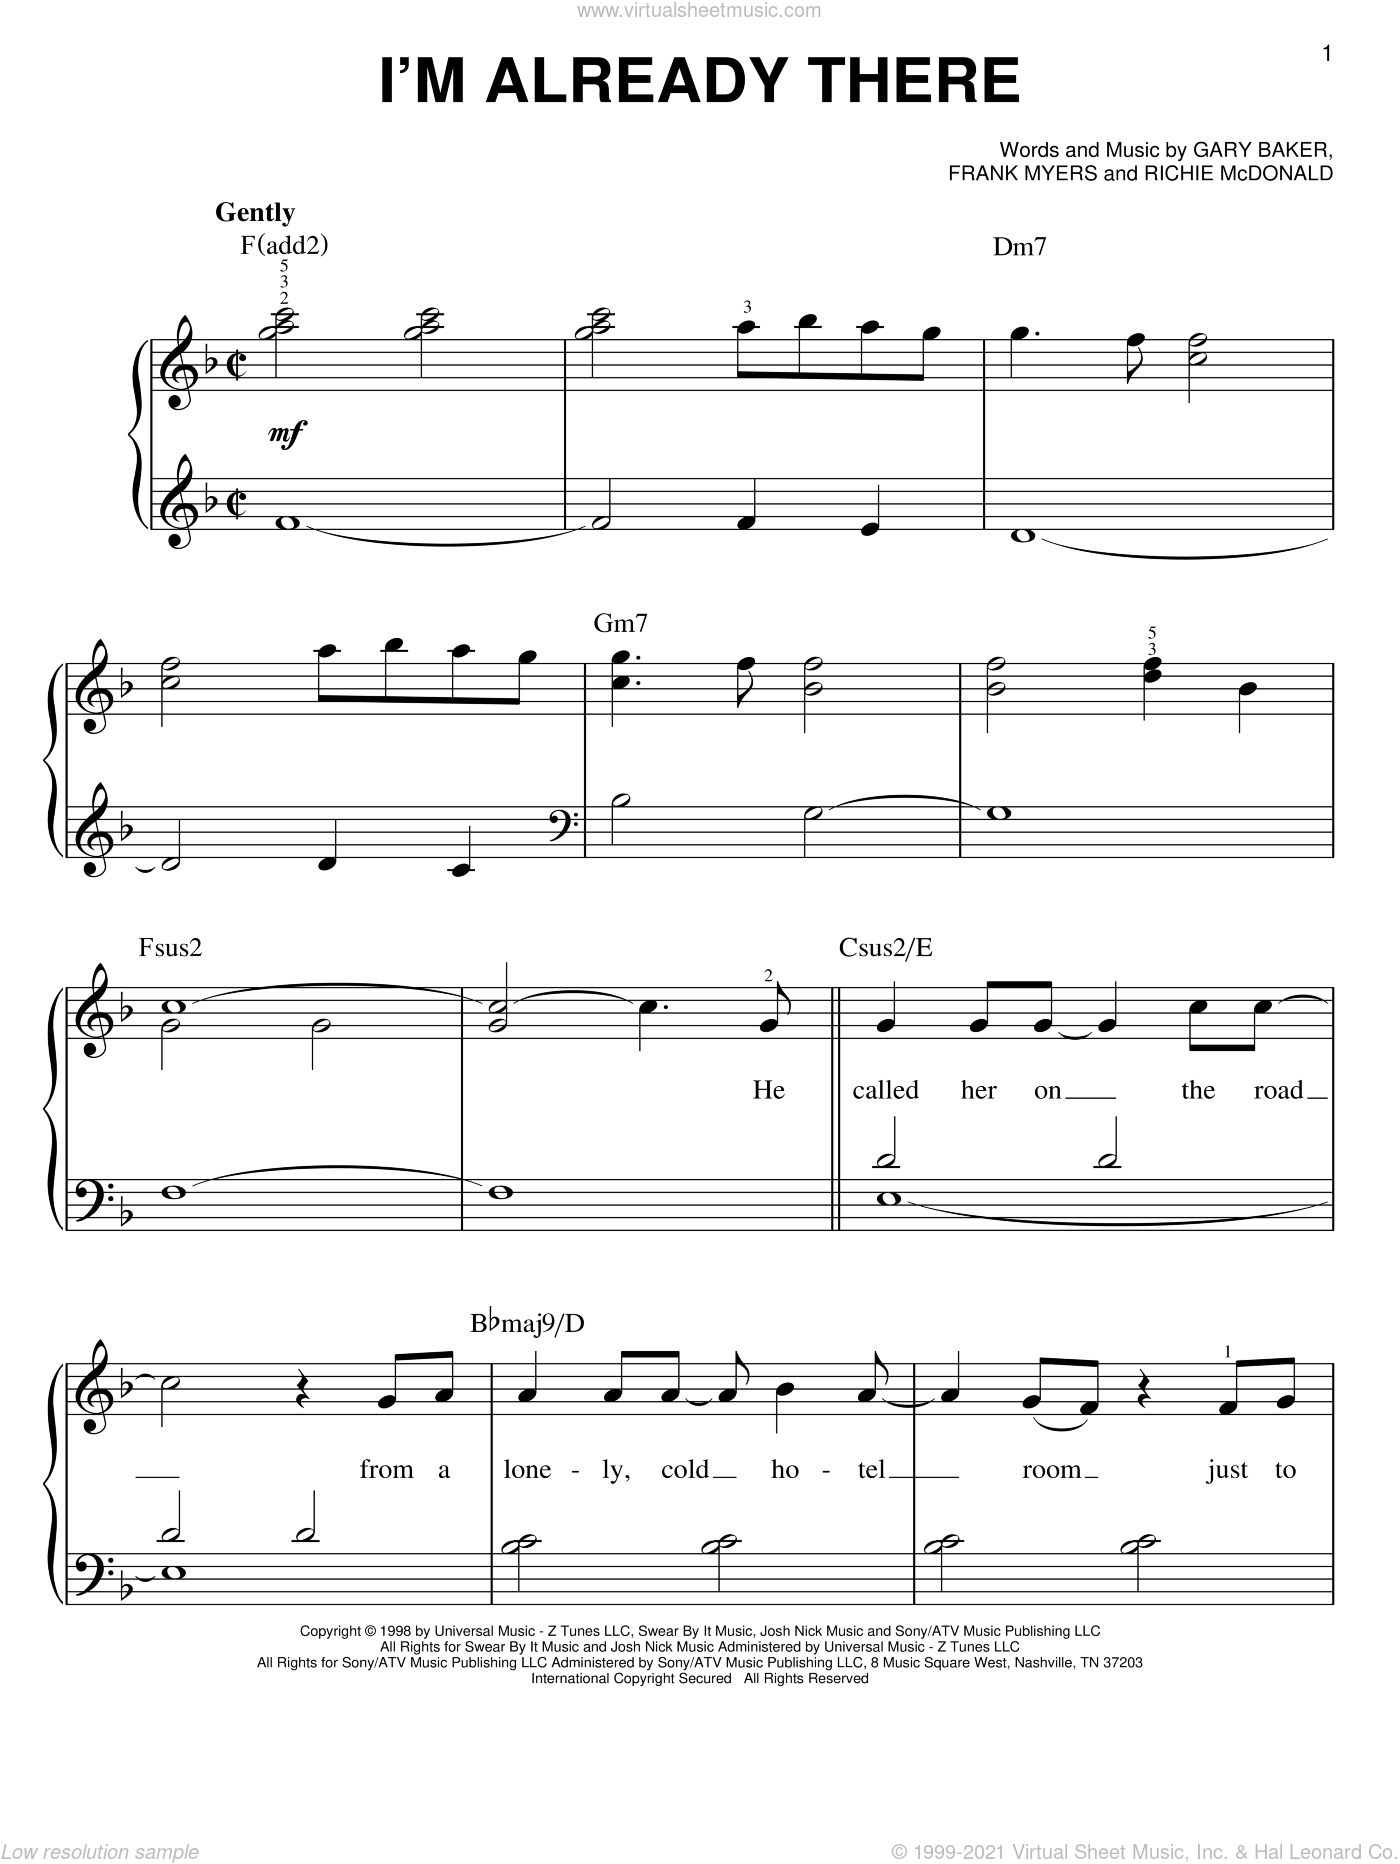 I'm Already There sheet music for piano solo (chords) by Richie McDonald